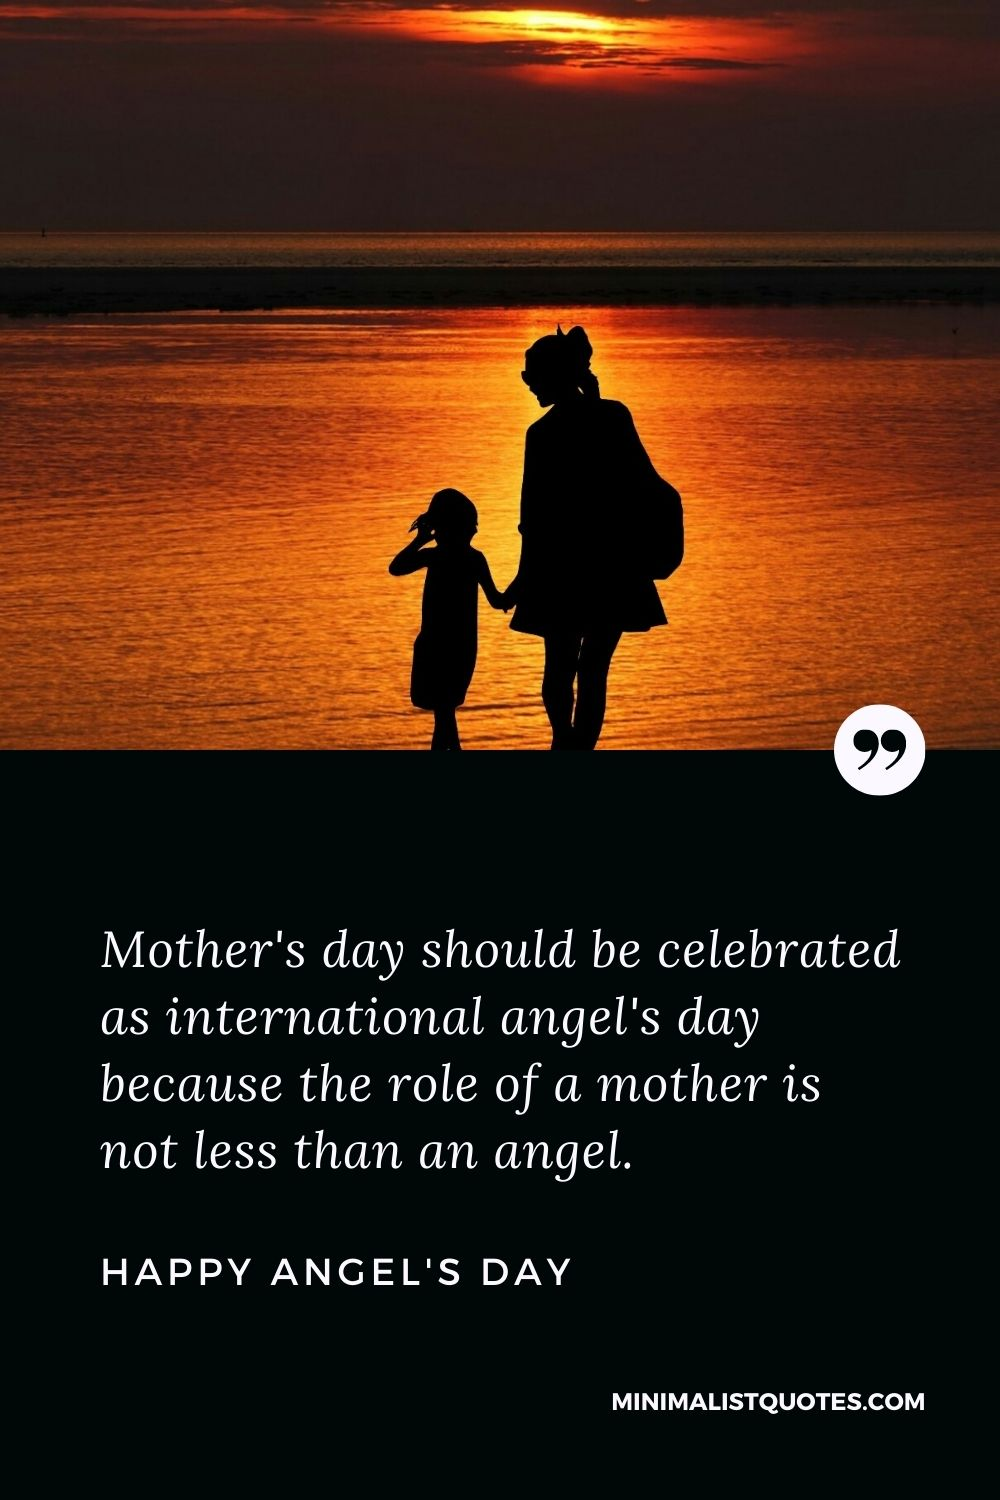 Mother's day wish, message & quote with HD image: Mother's day should be celebrated as international angel's day because the role of a mother is not less than an angel. Happy Angel's Day!